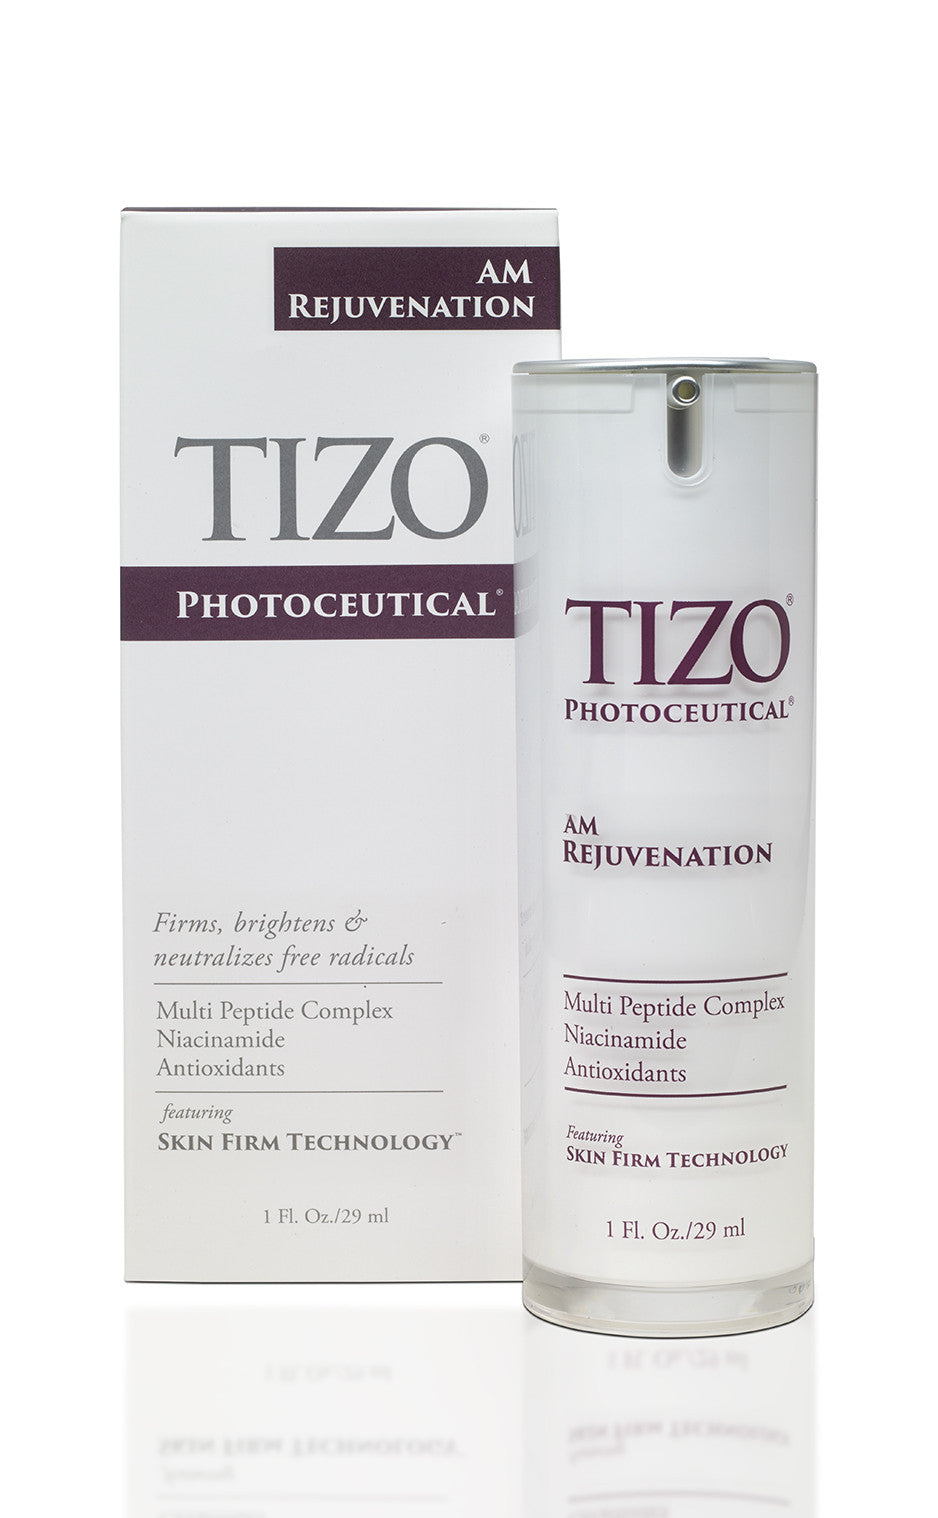 Tizo Photoceutical AM Rejuvenation - 1 oz - Sophie's Cosmetics